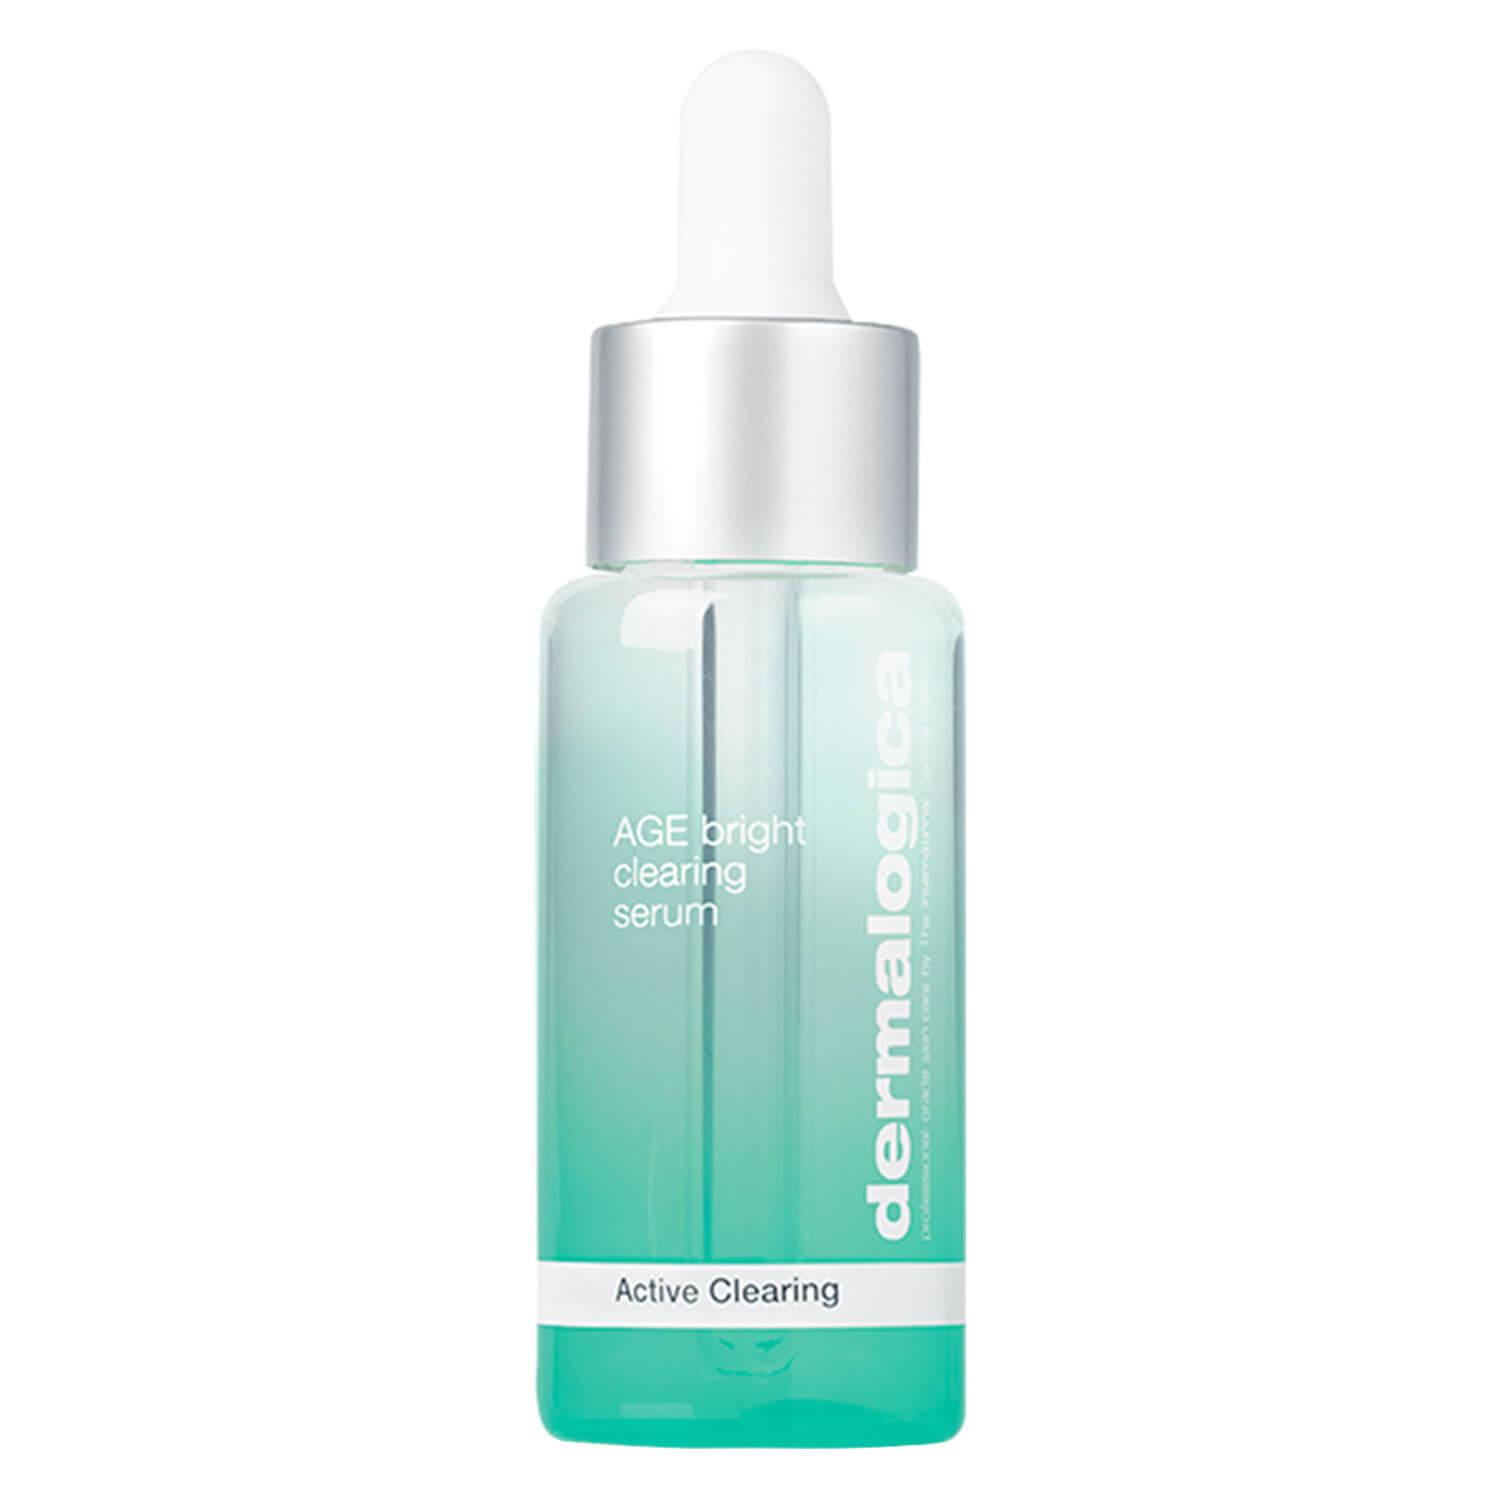 Active Clearing - AGE Bright Clearing Serum